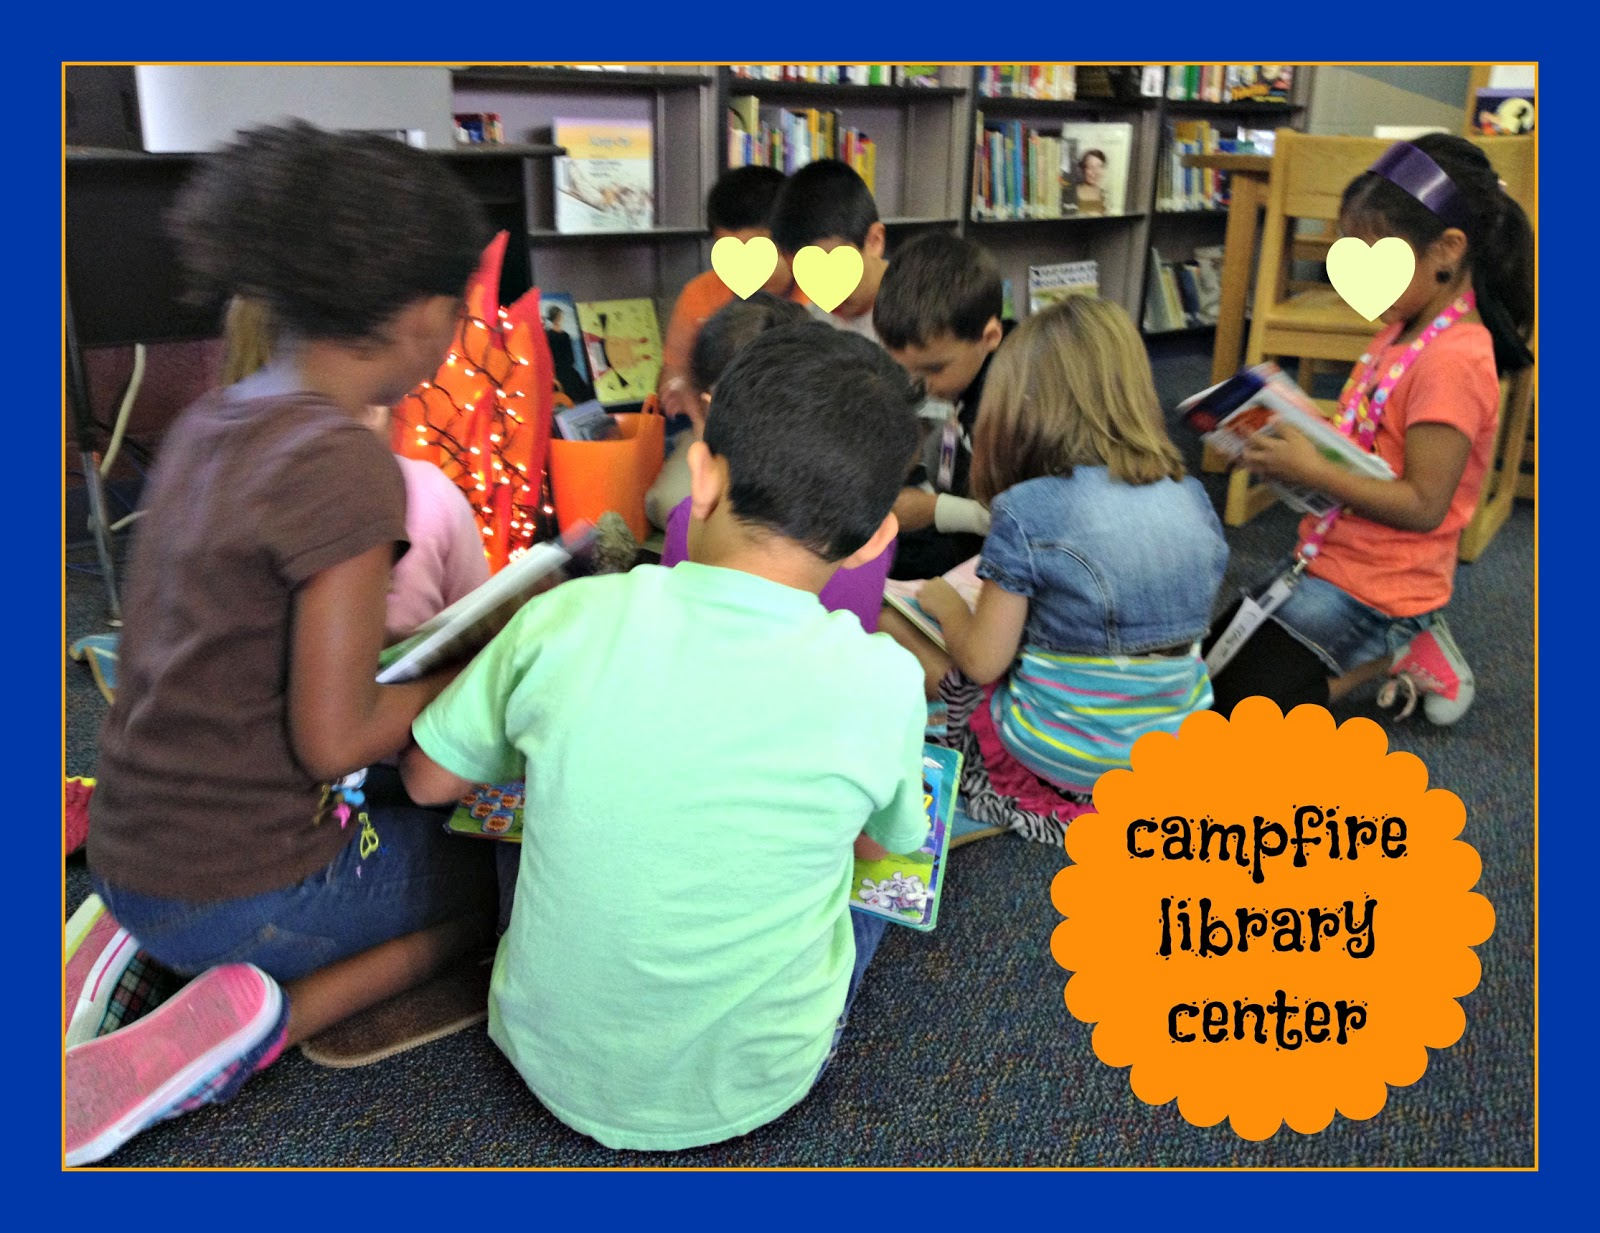 Library Learners Campfire Story Center We Love It